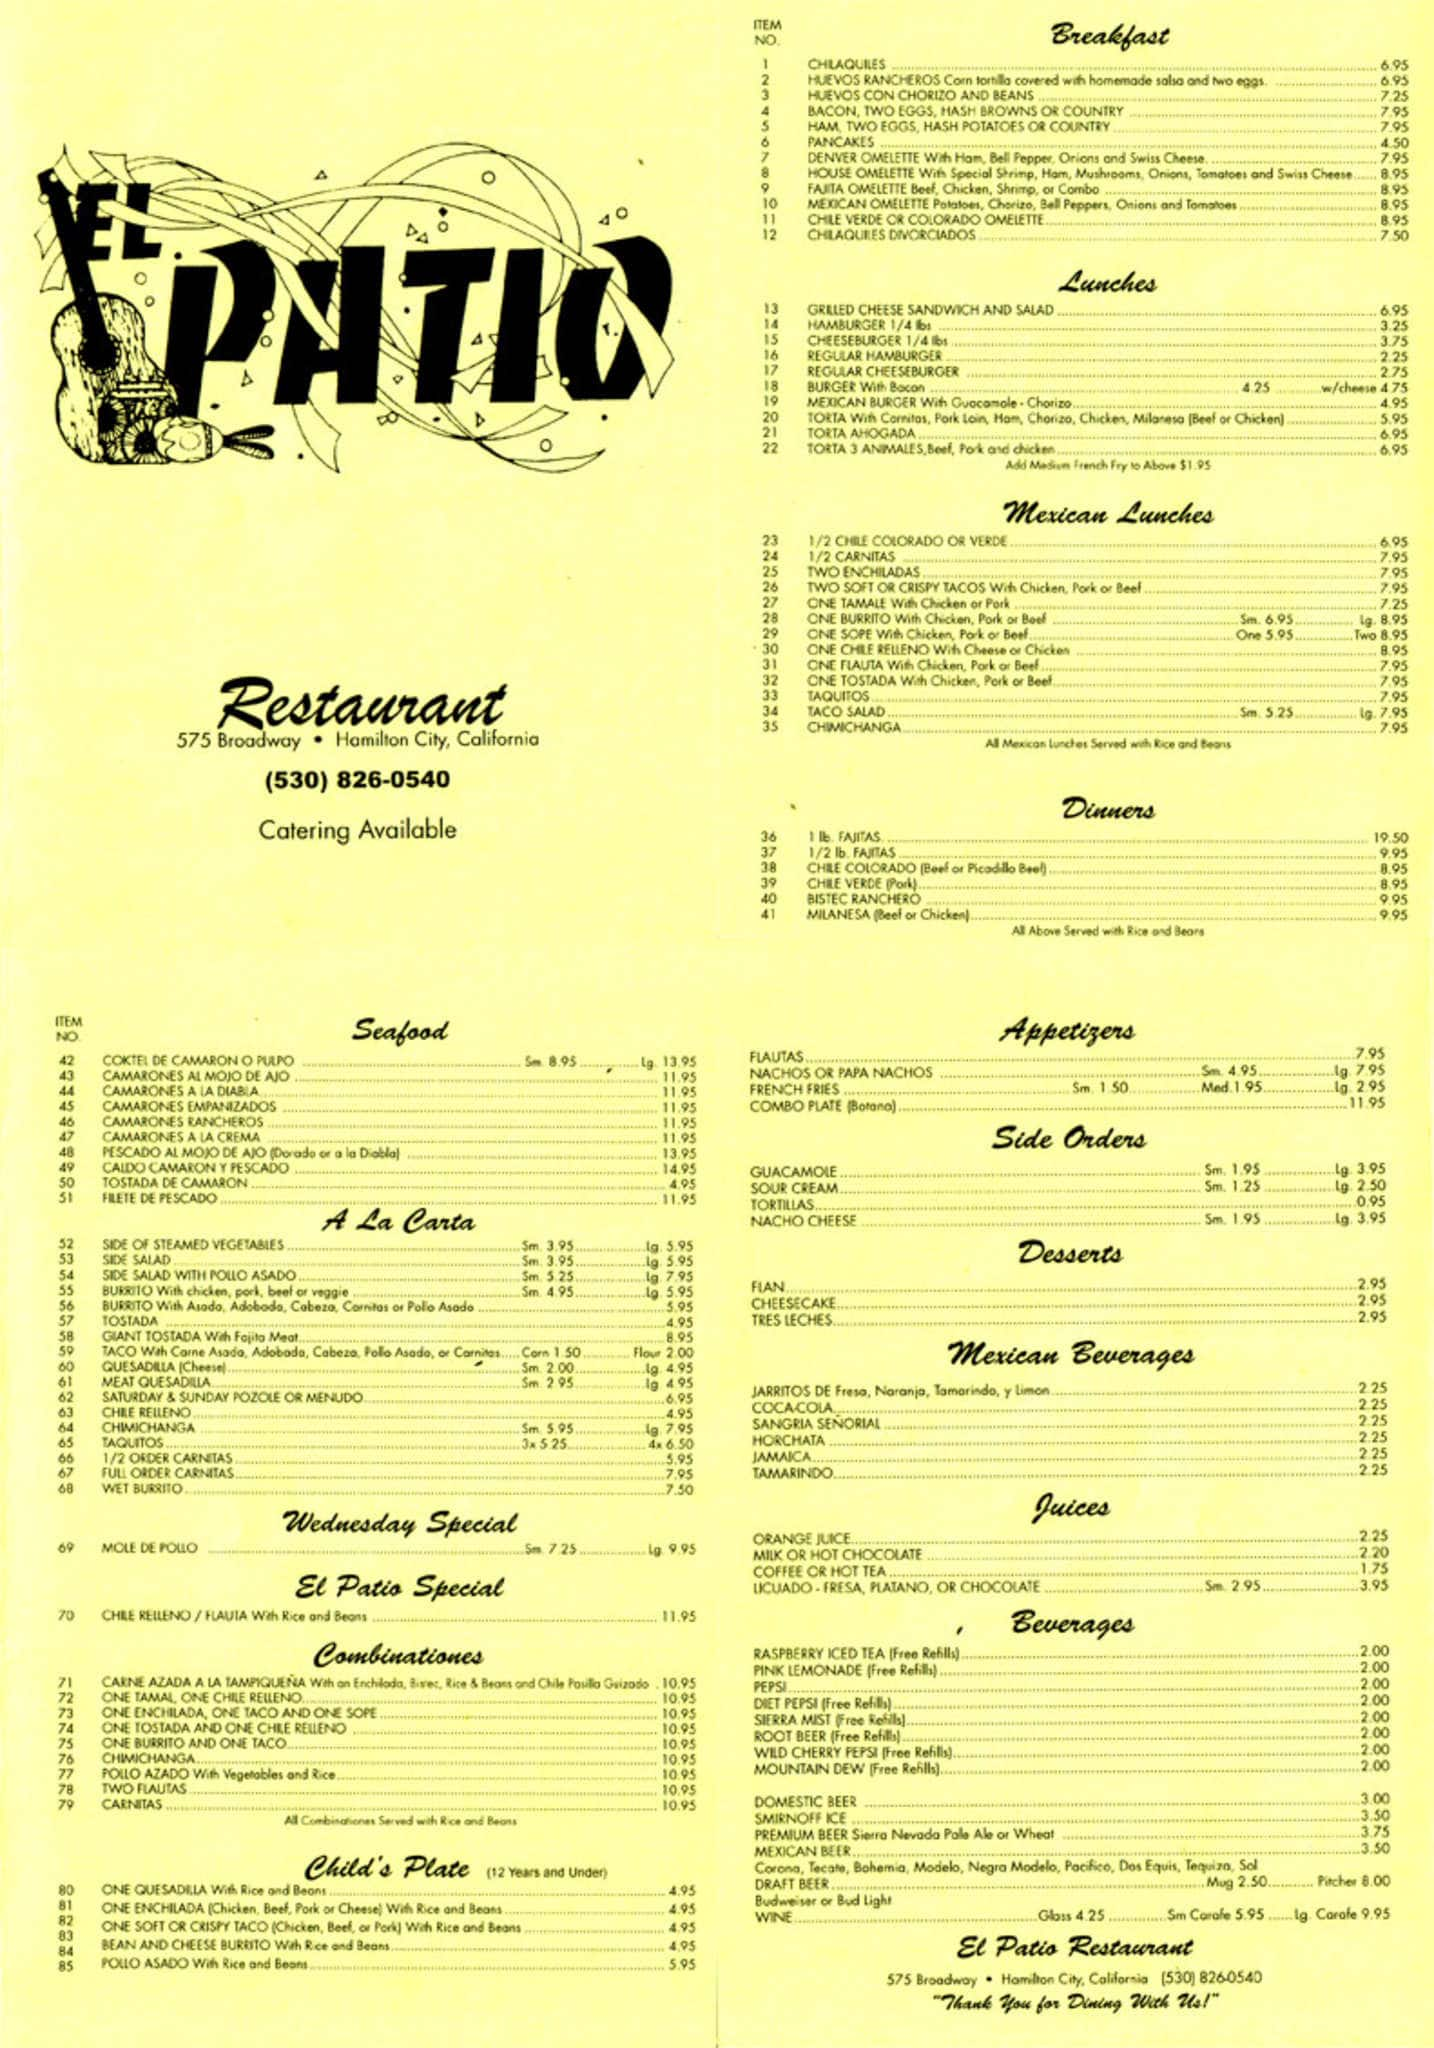 Scanned Menu For El Patio Restaurant